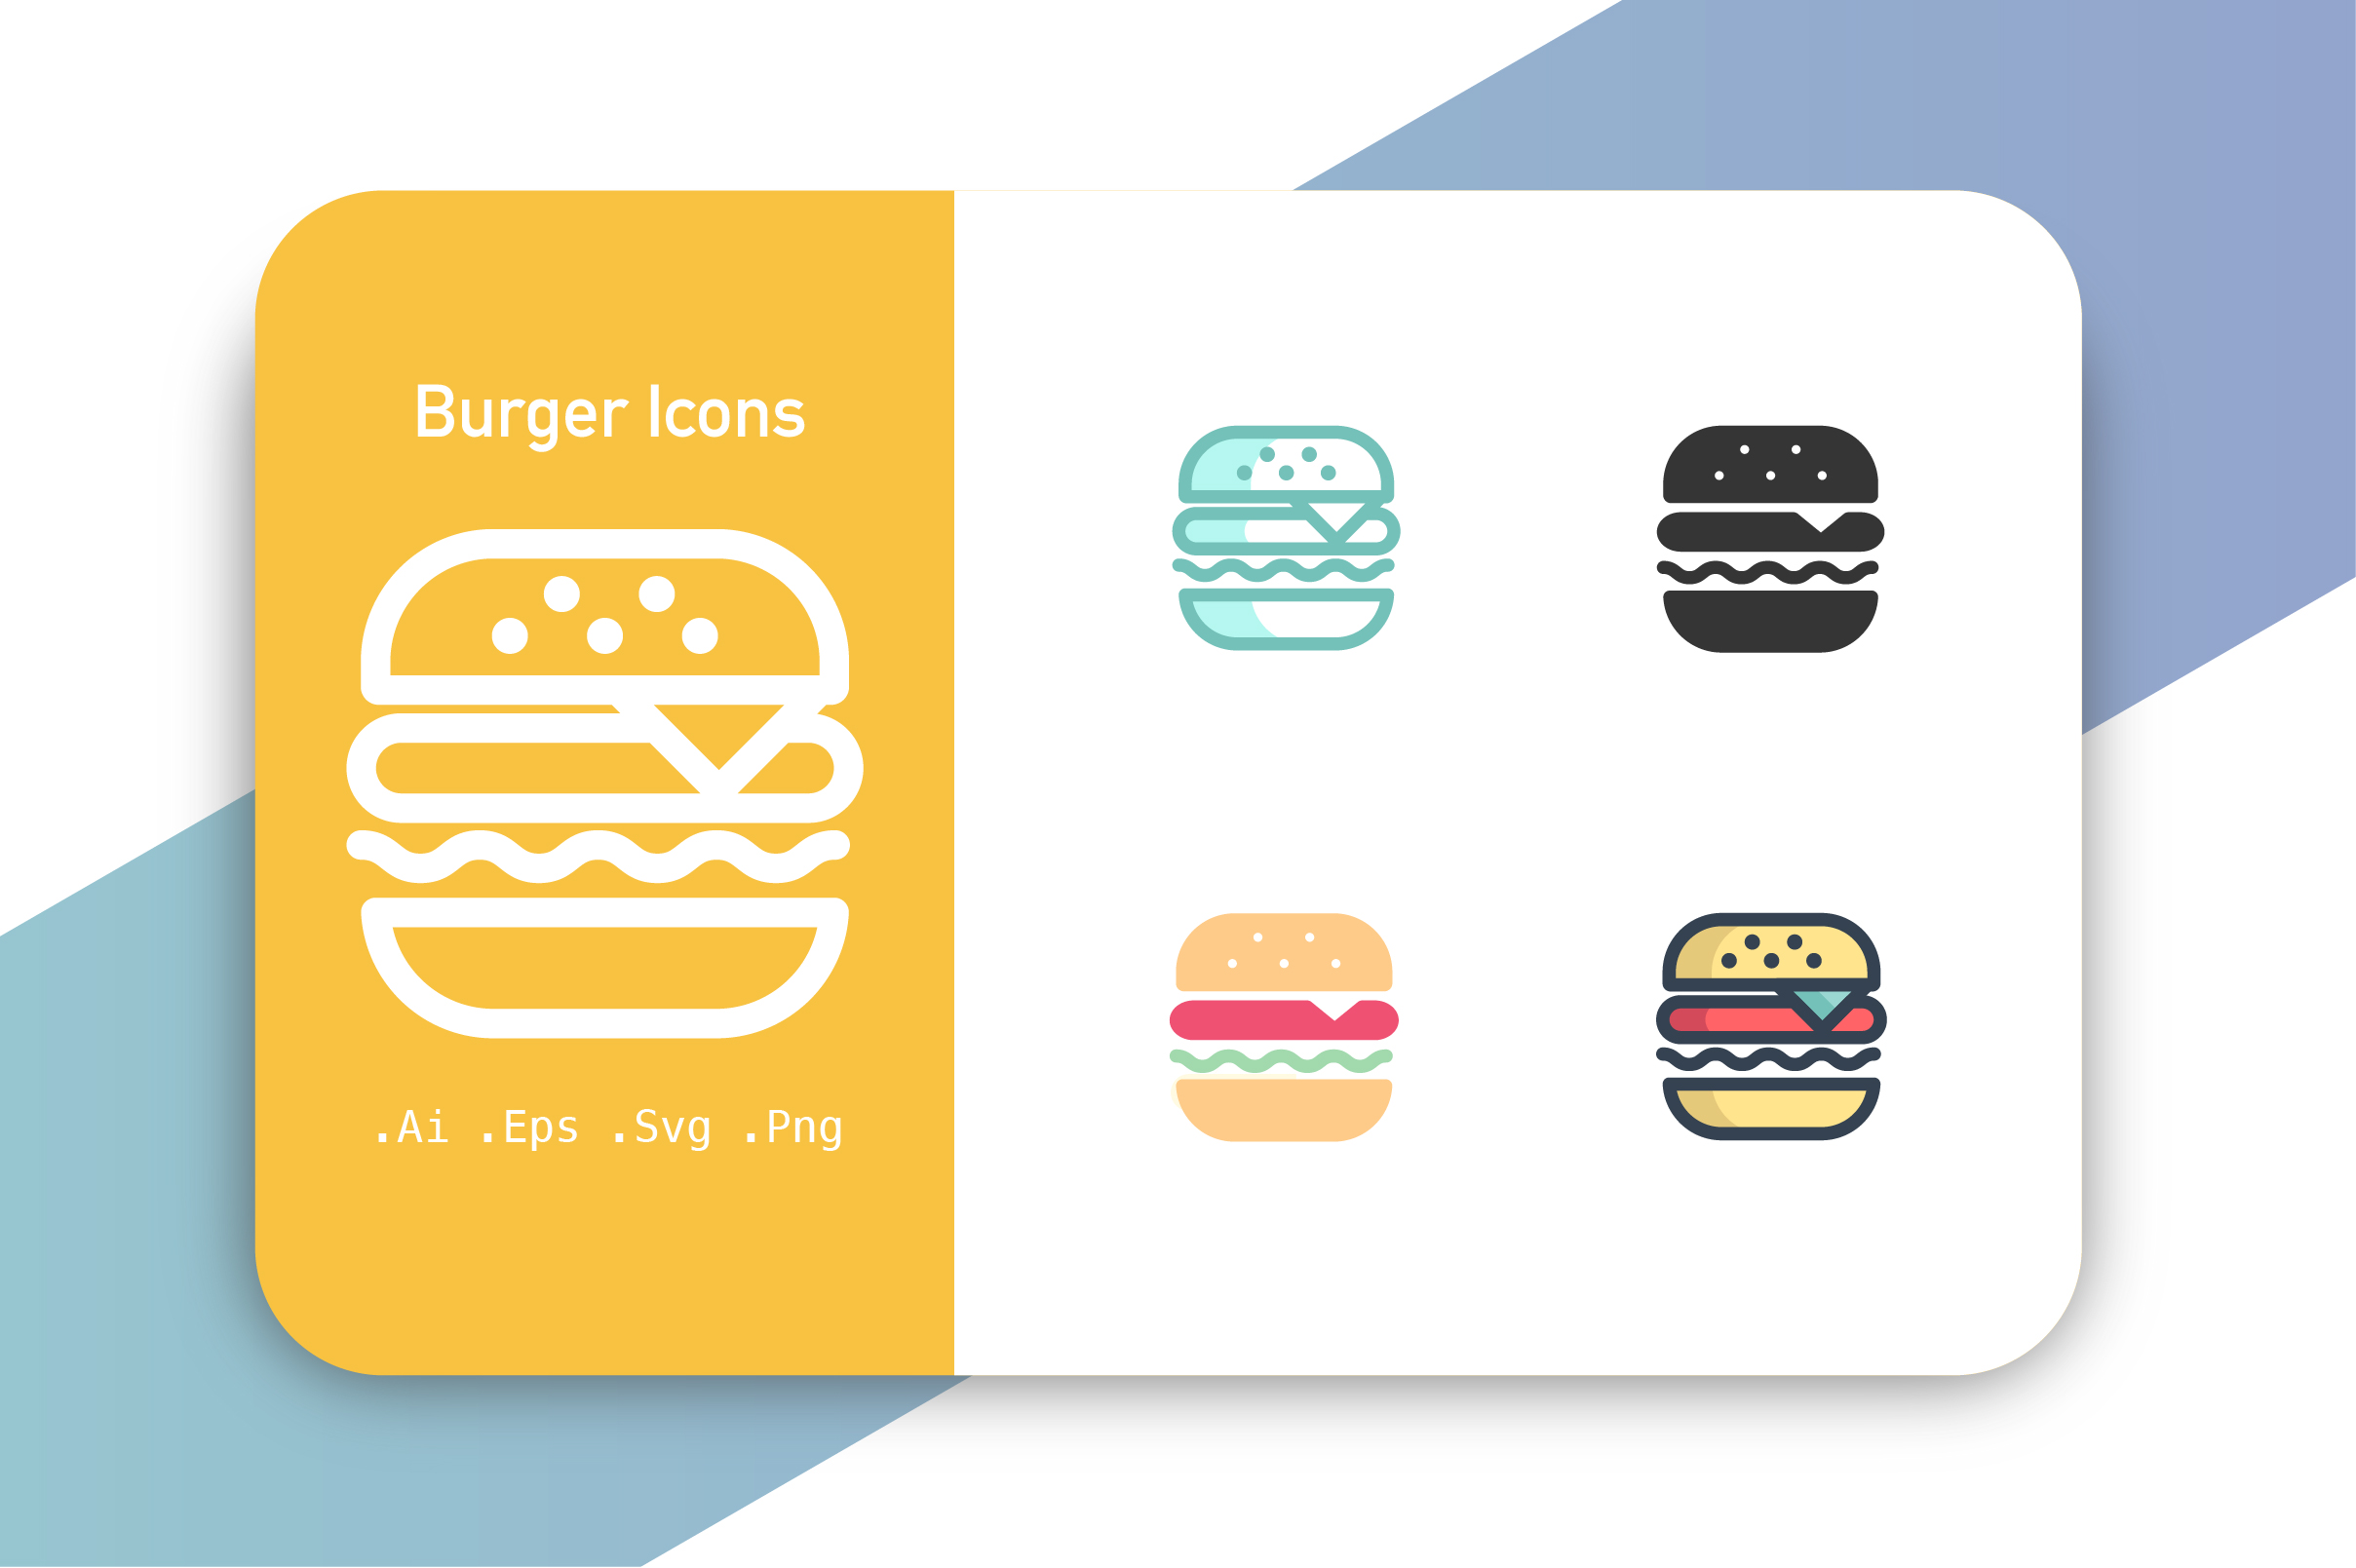 Download Free Burger Icons Graphic By Hellopixelzstudio Creative Fabrica for Cricut Explore, Silhouette and other cutting machines.